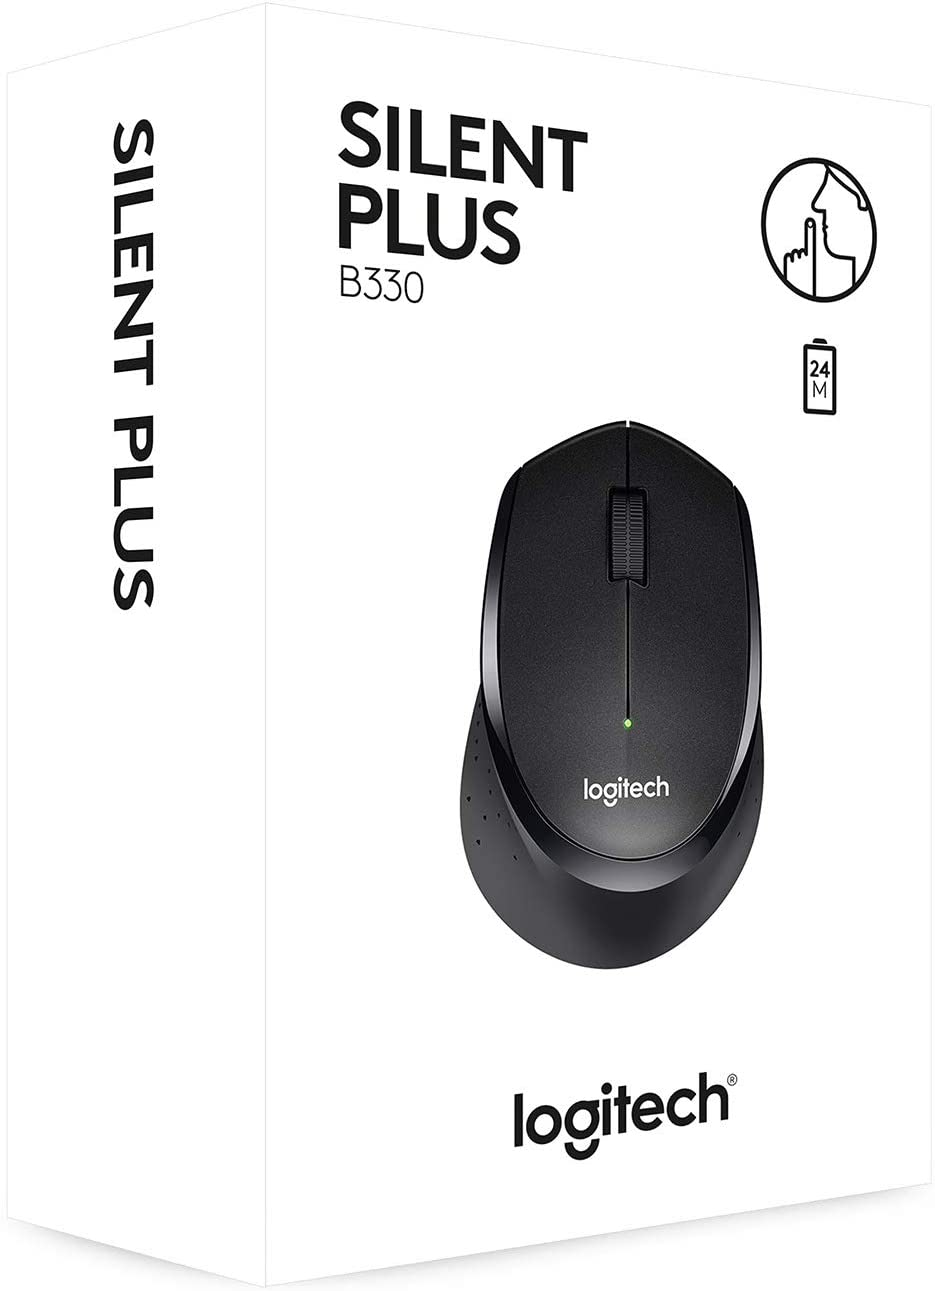 Mouse/ Logitech/Wireless Mouse  B330 Silent Plus   910-004-913   BLACK